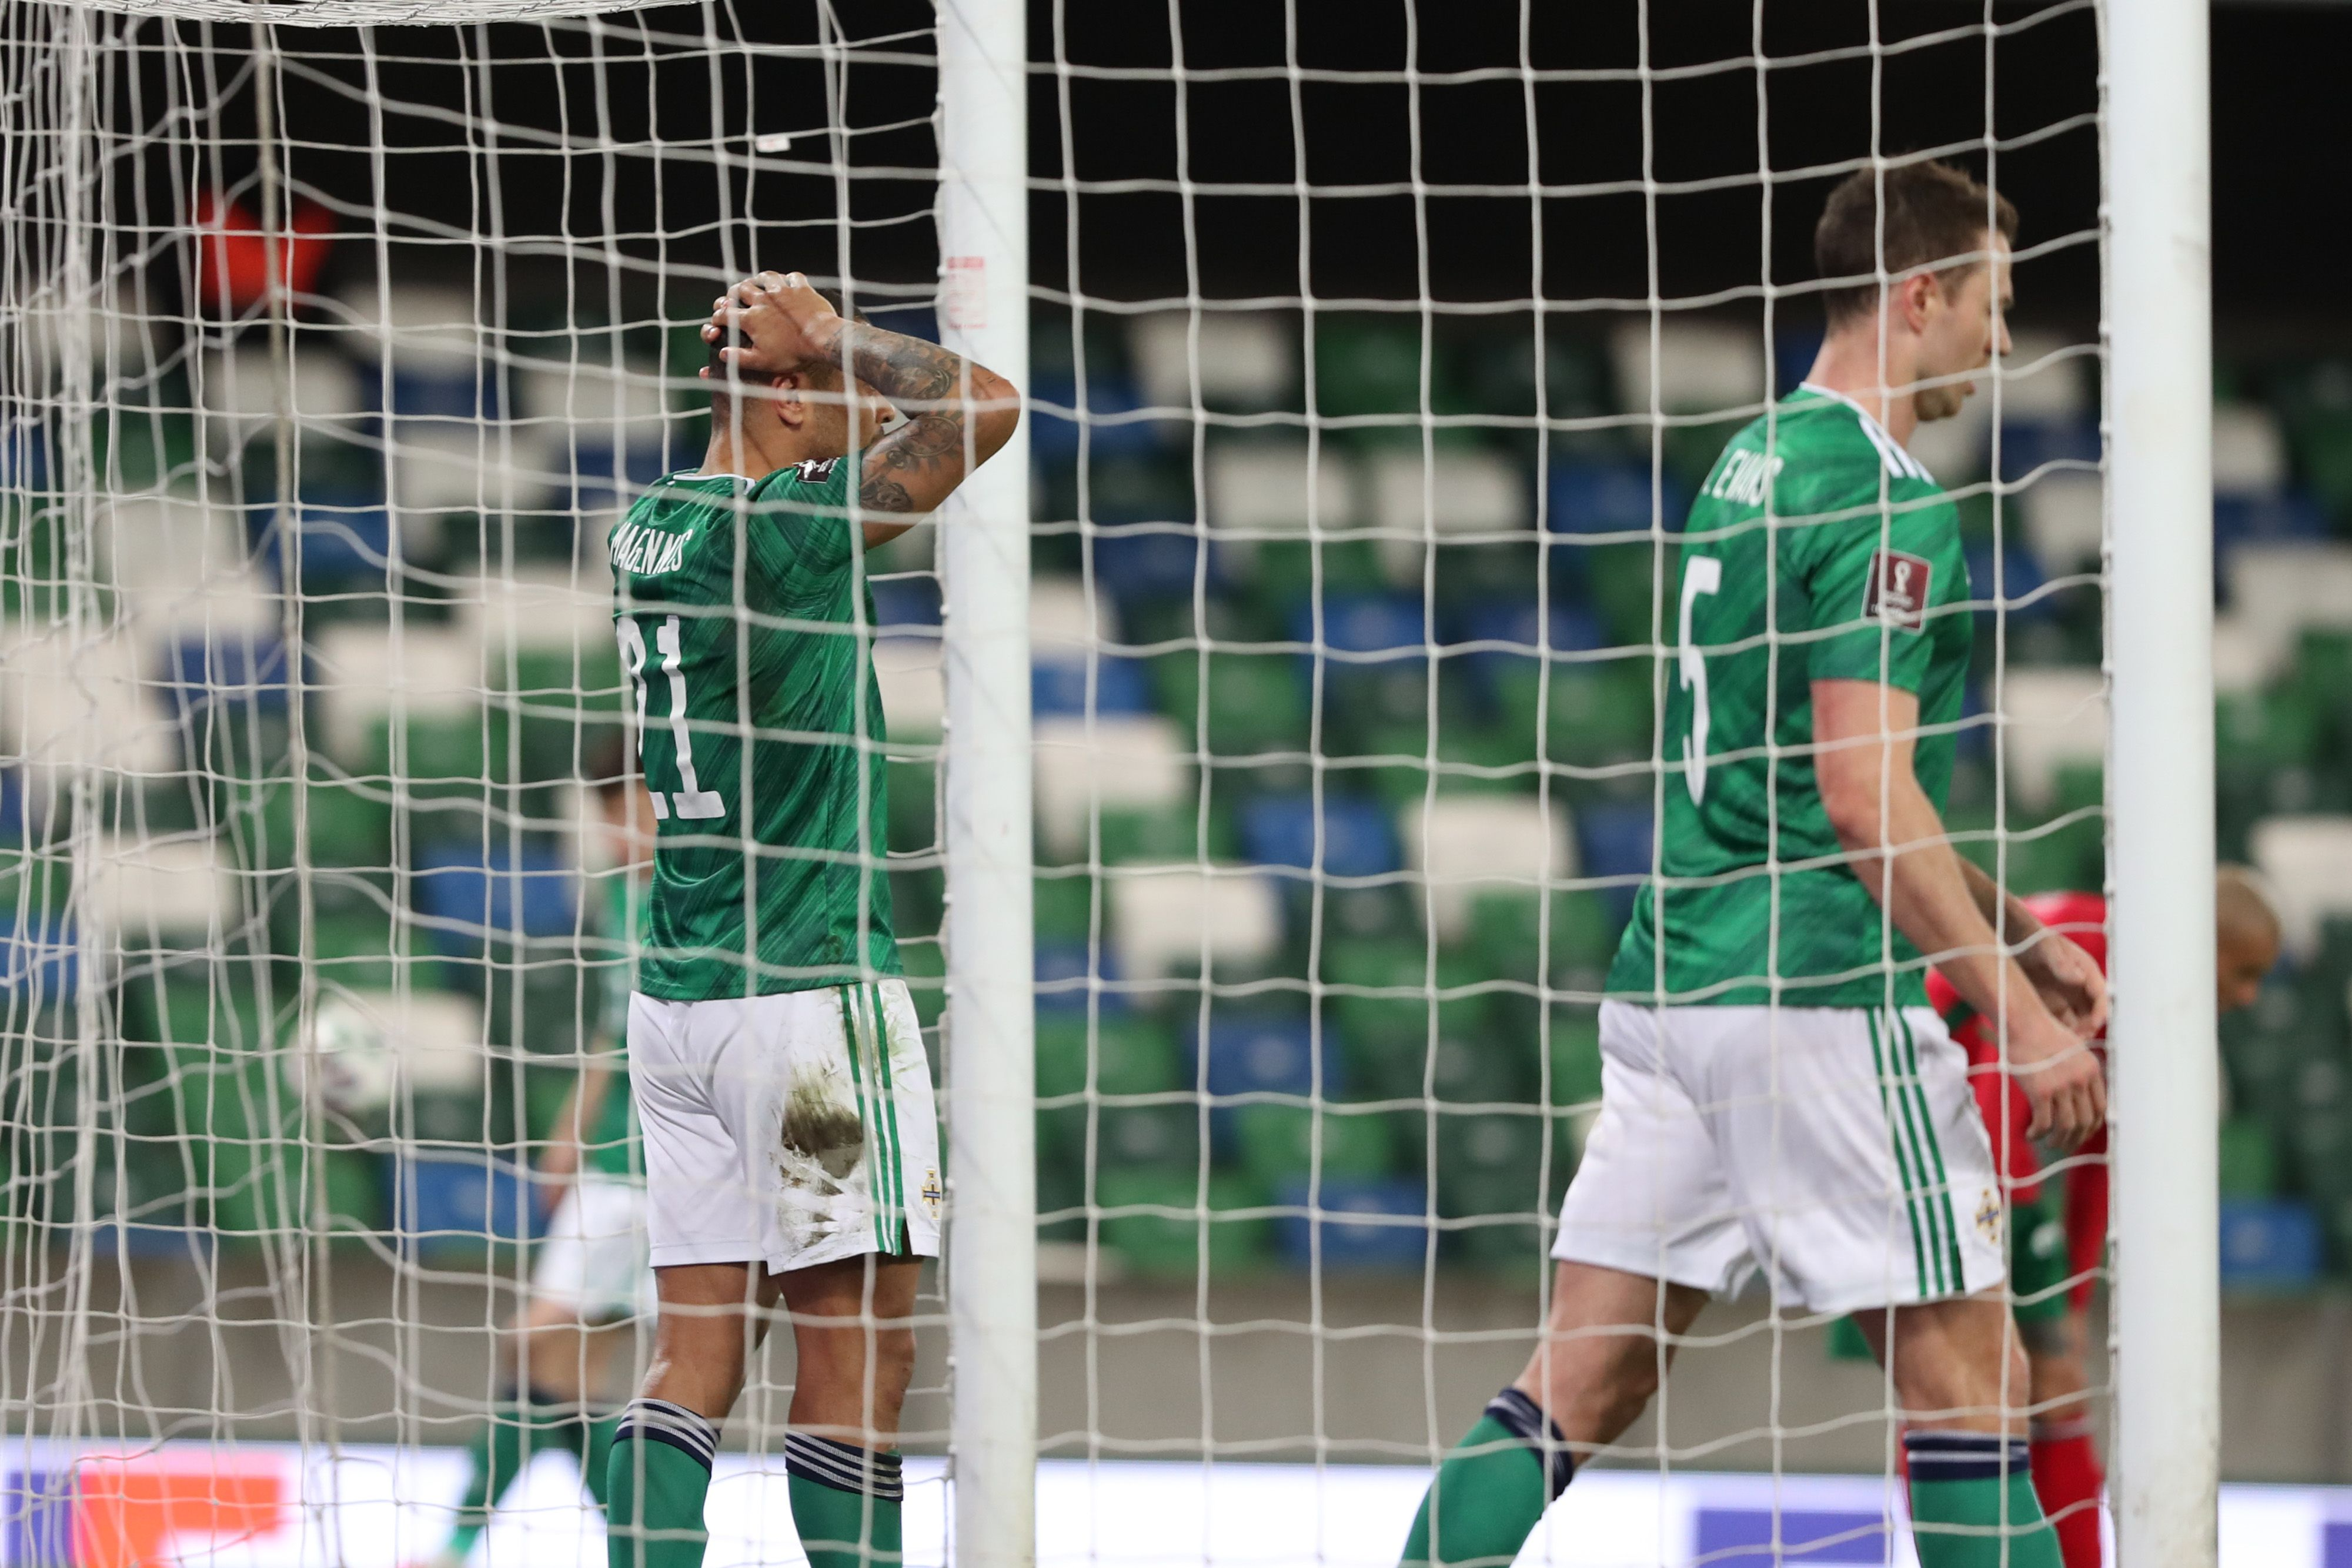 FRUSTRATION: Northern Ireland striker Josh Magennis reacts after going close to scoring